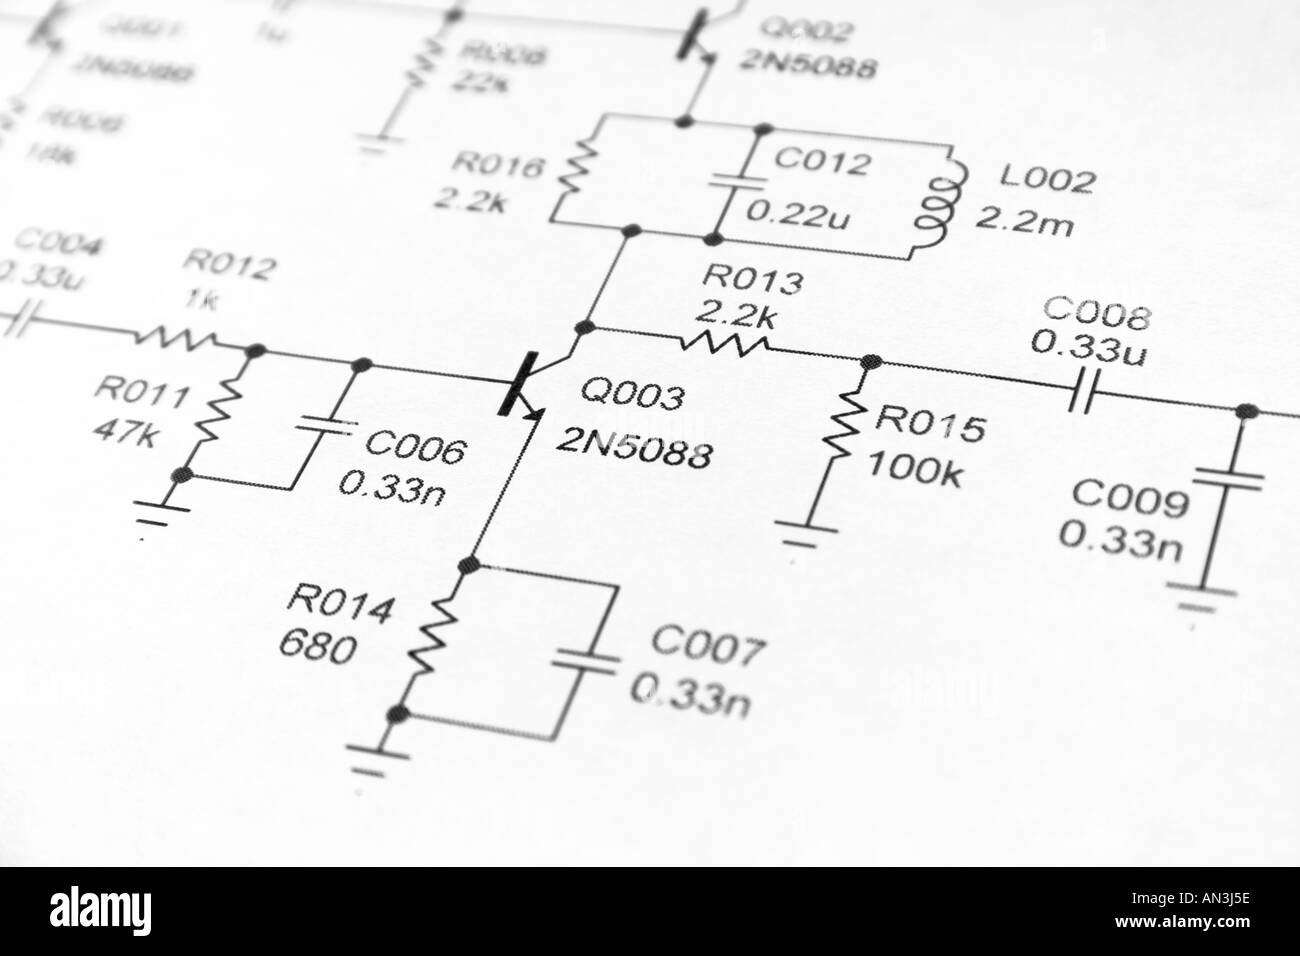 Schematic Stock Photos & Schematic Stock Images - Alamy